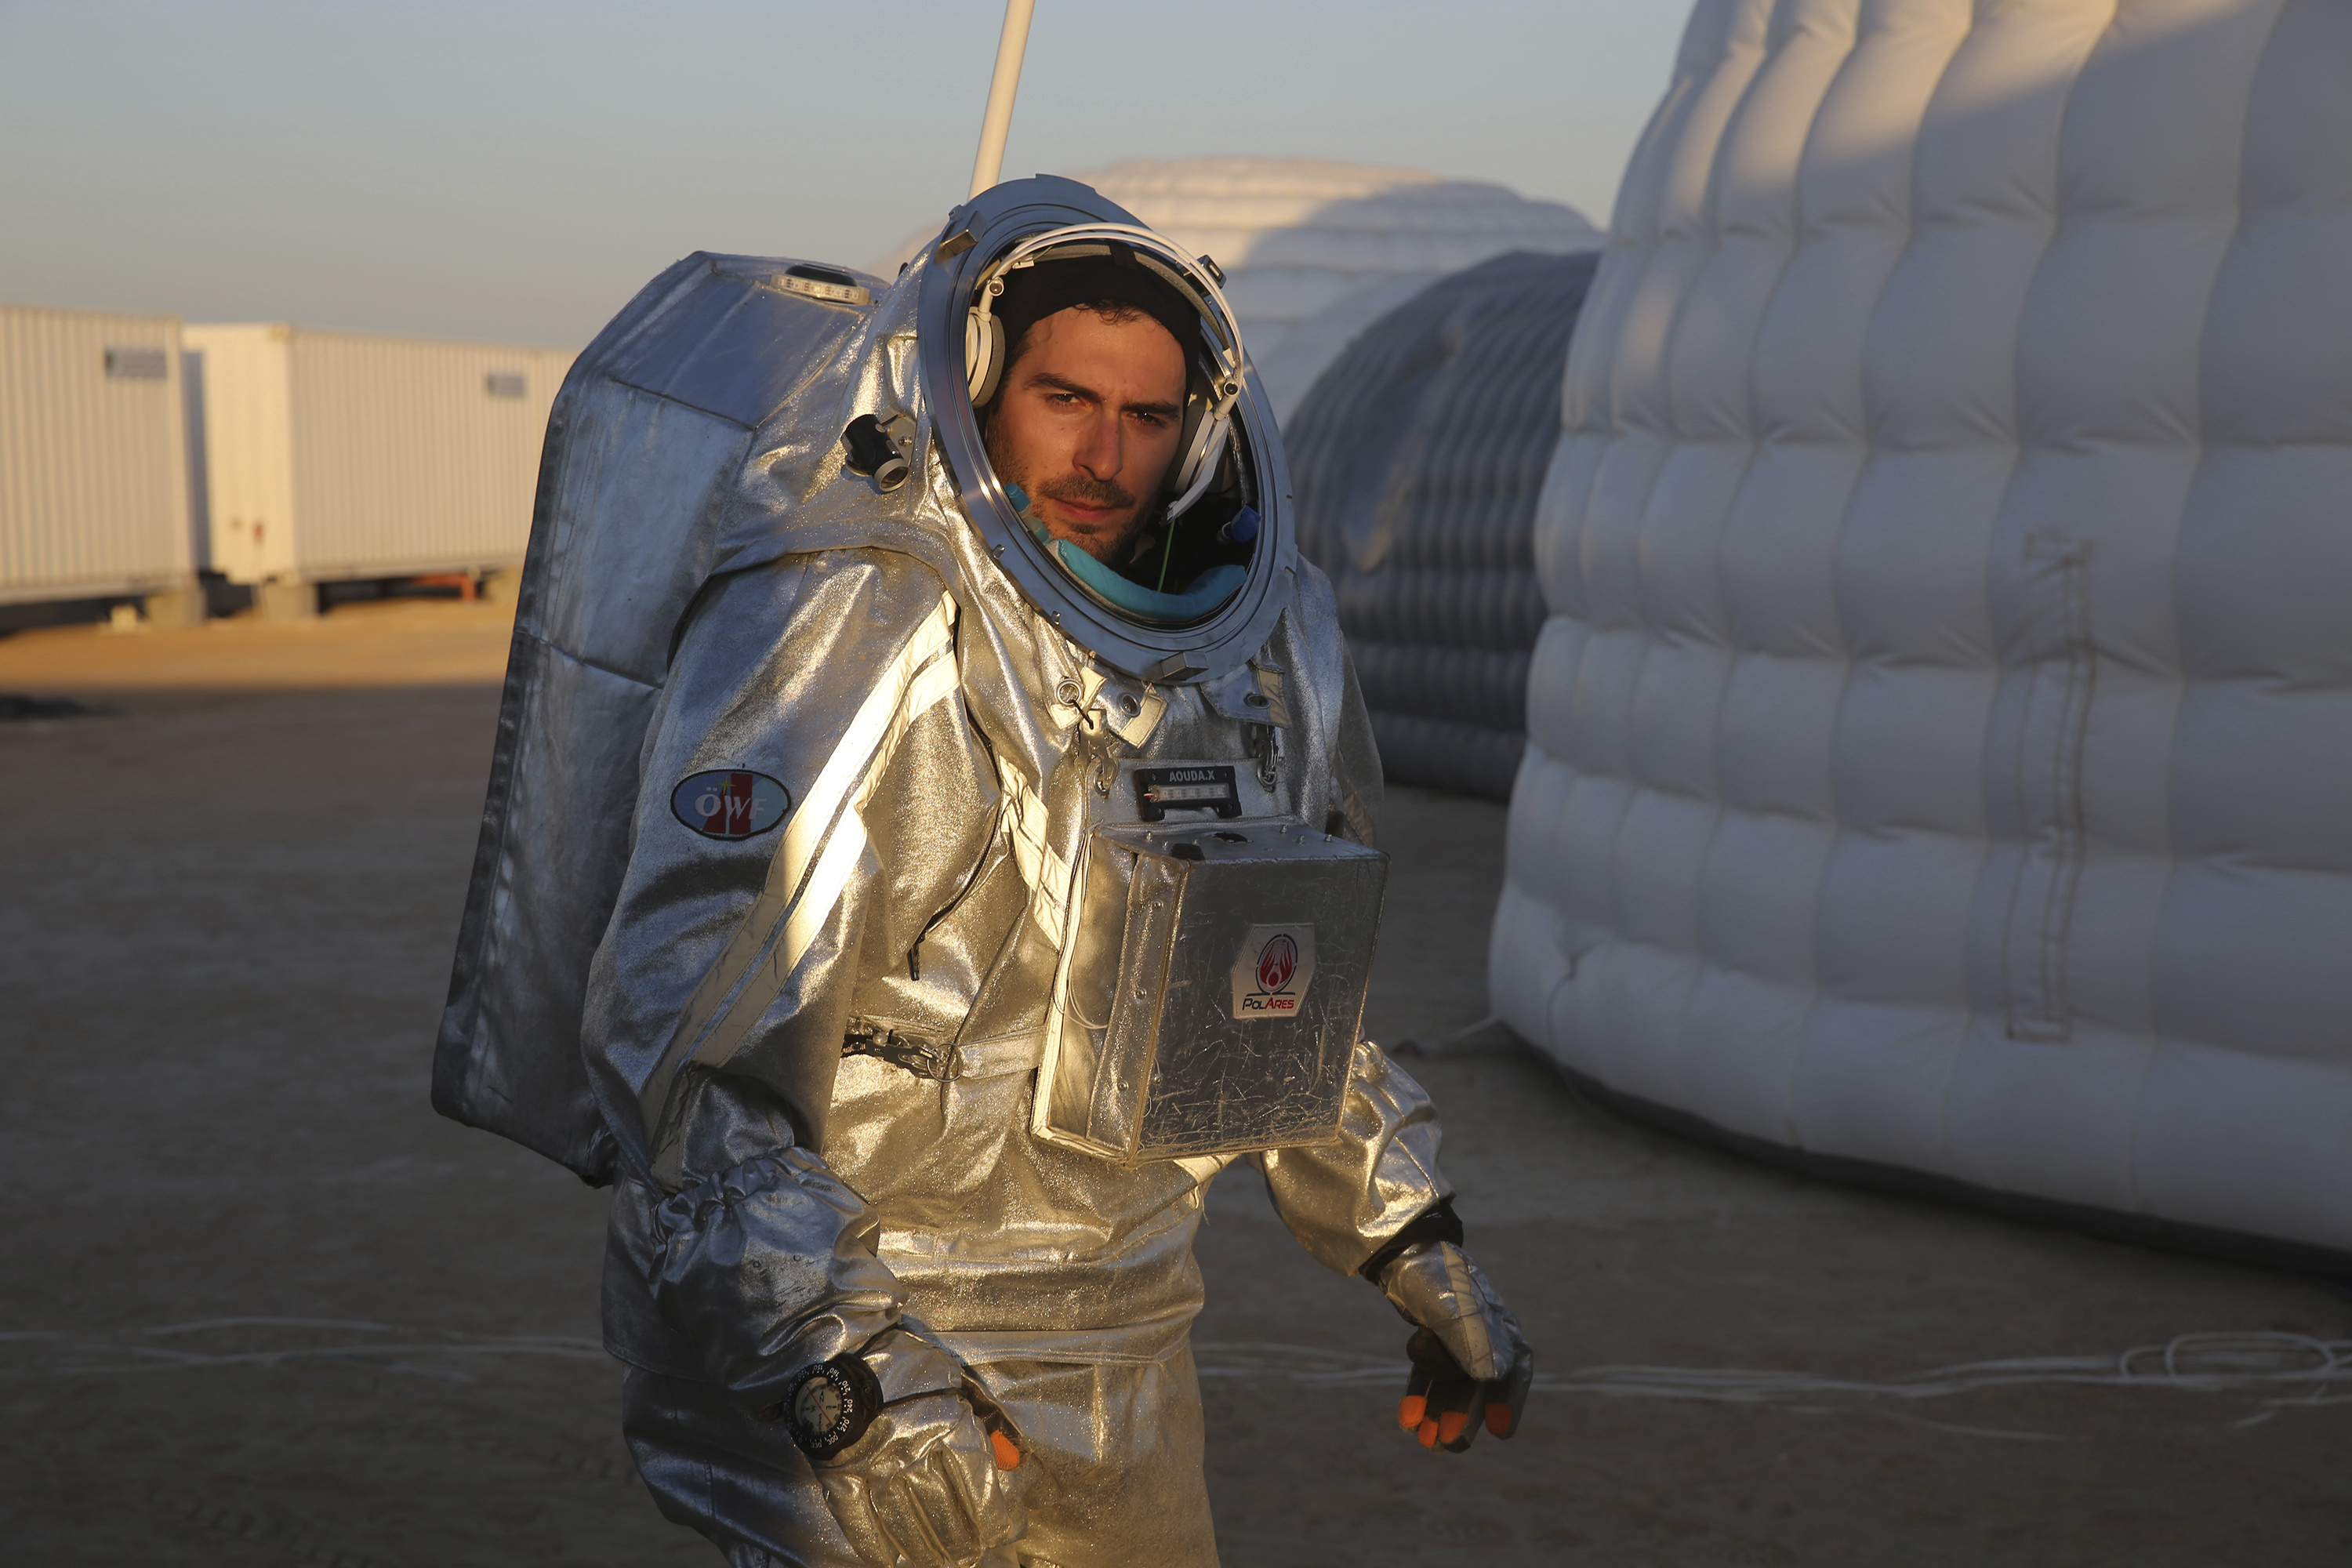 Joao Lousada, a flight controller for the International Space Station, wearing an experimental space suit during a simulation of a future Mars mission in the Dhofar desert of southern Oman (Sam McNeil/AP)